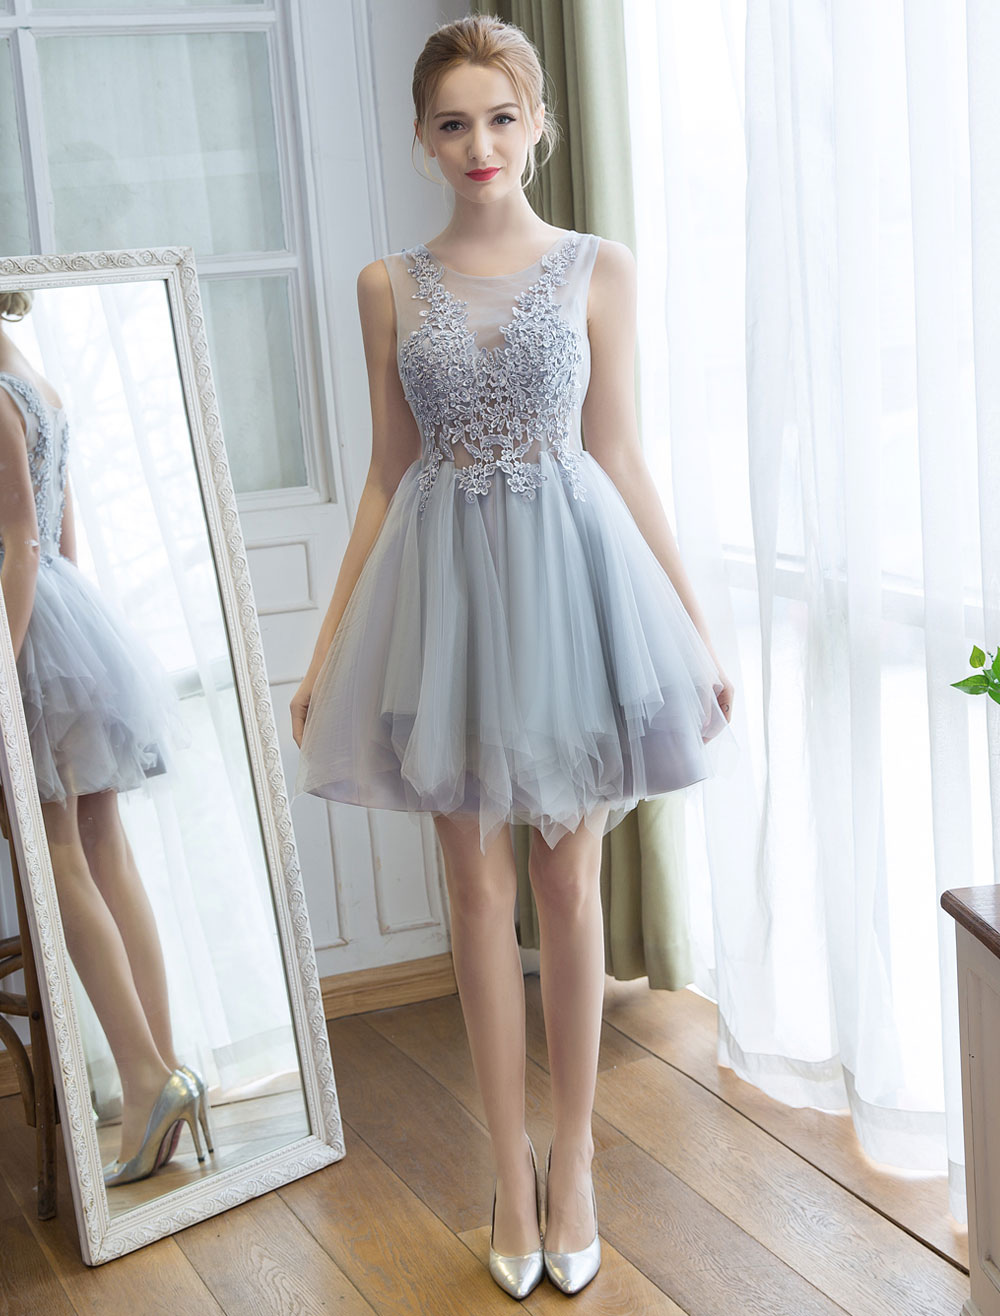 Tulle Homecoming Dresses Lace Applique Tutu Dress Light Gray Short Prom Dress